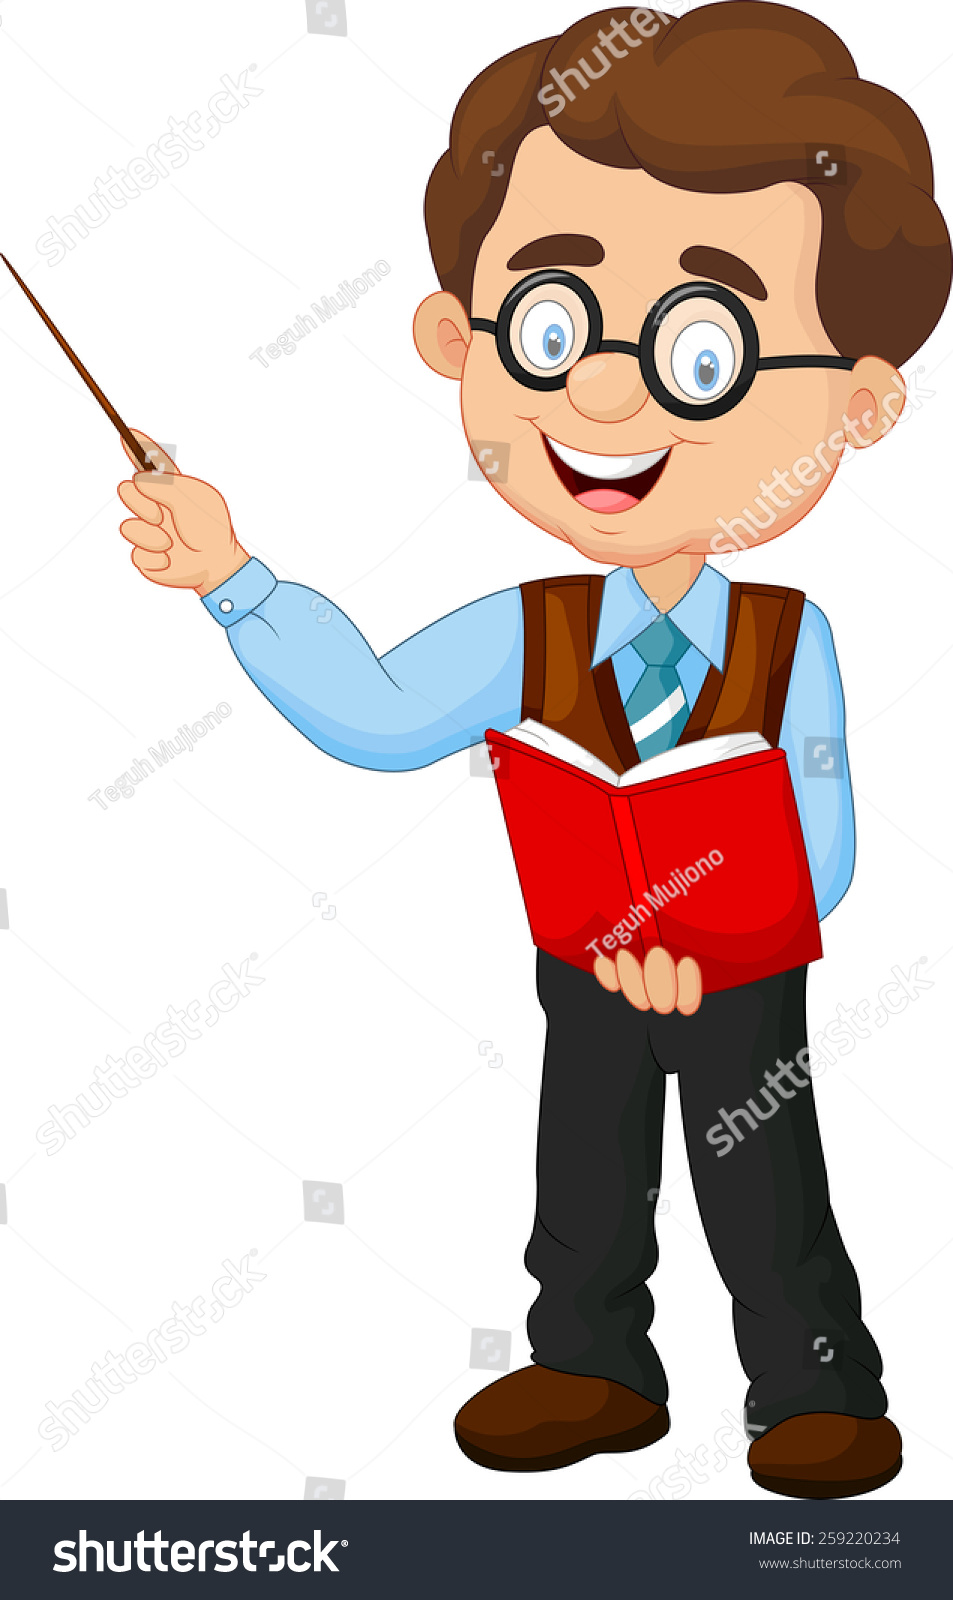 cartoon male teacher stock illustration 259220234